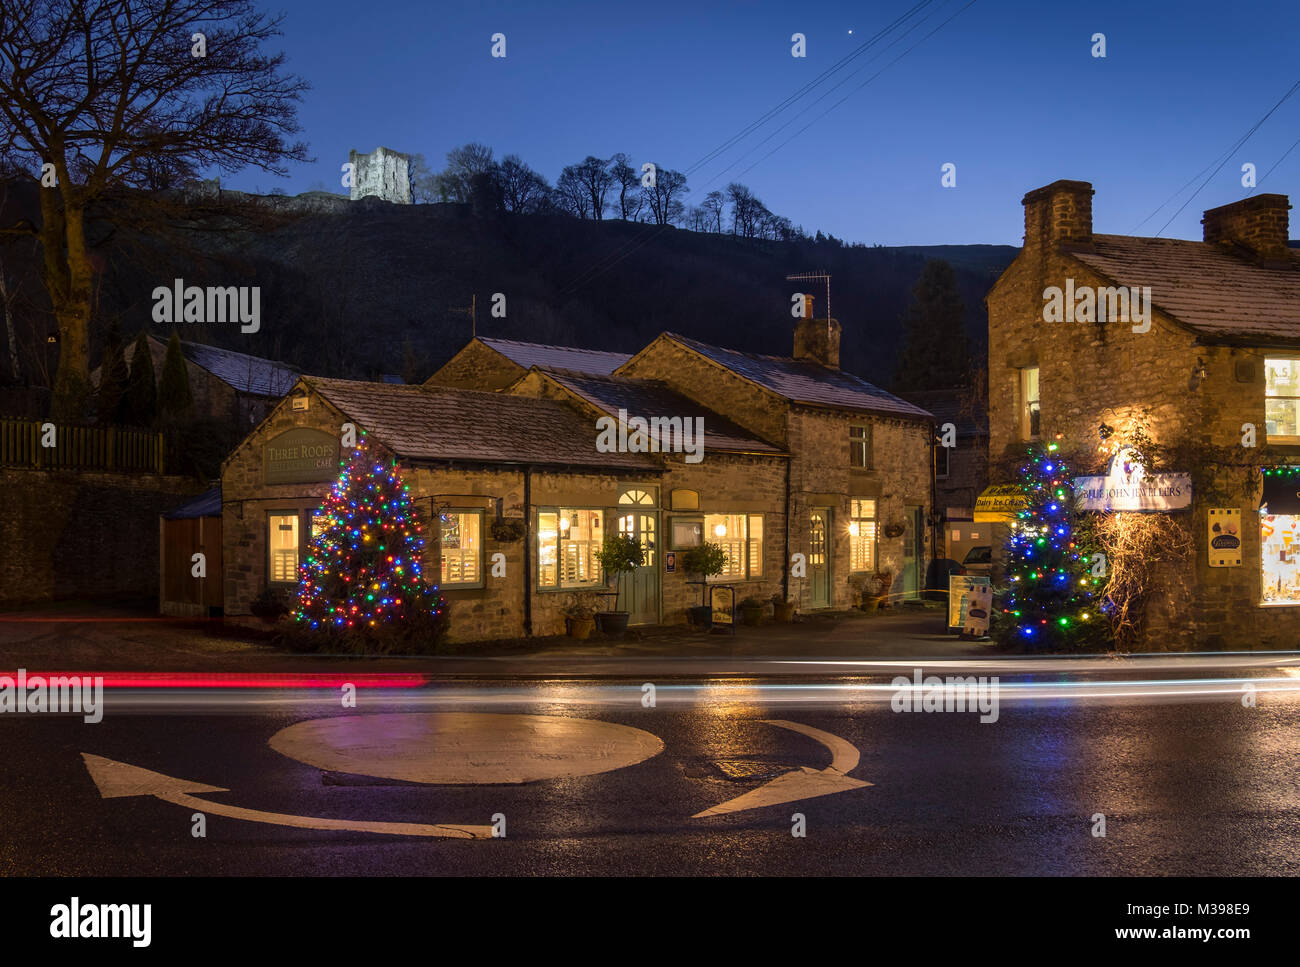 Shops in Castleton at Christmas backed by Peveril Castle at night, Peak District National Park, Derbyshire, England, - Stock Image